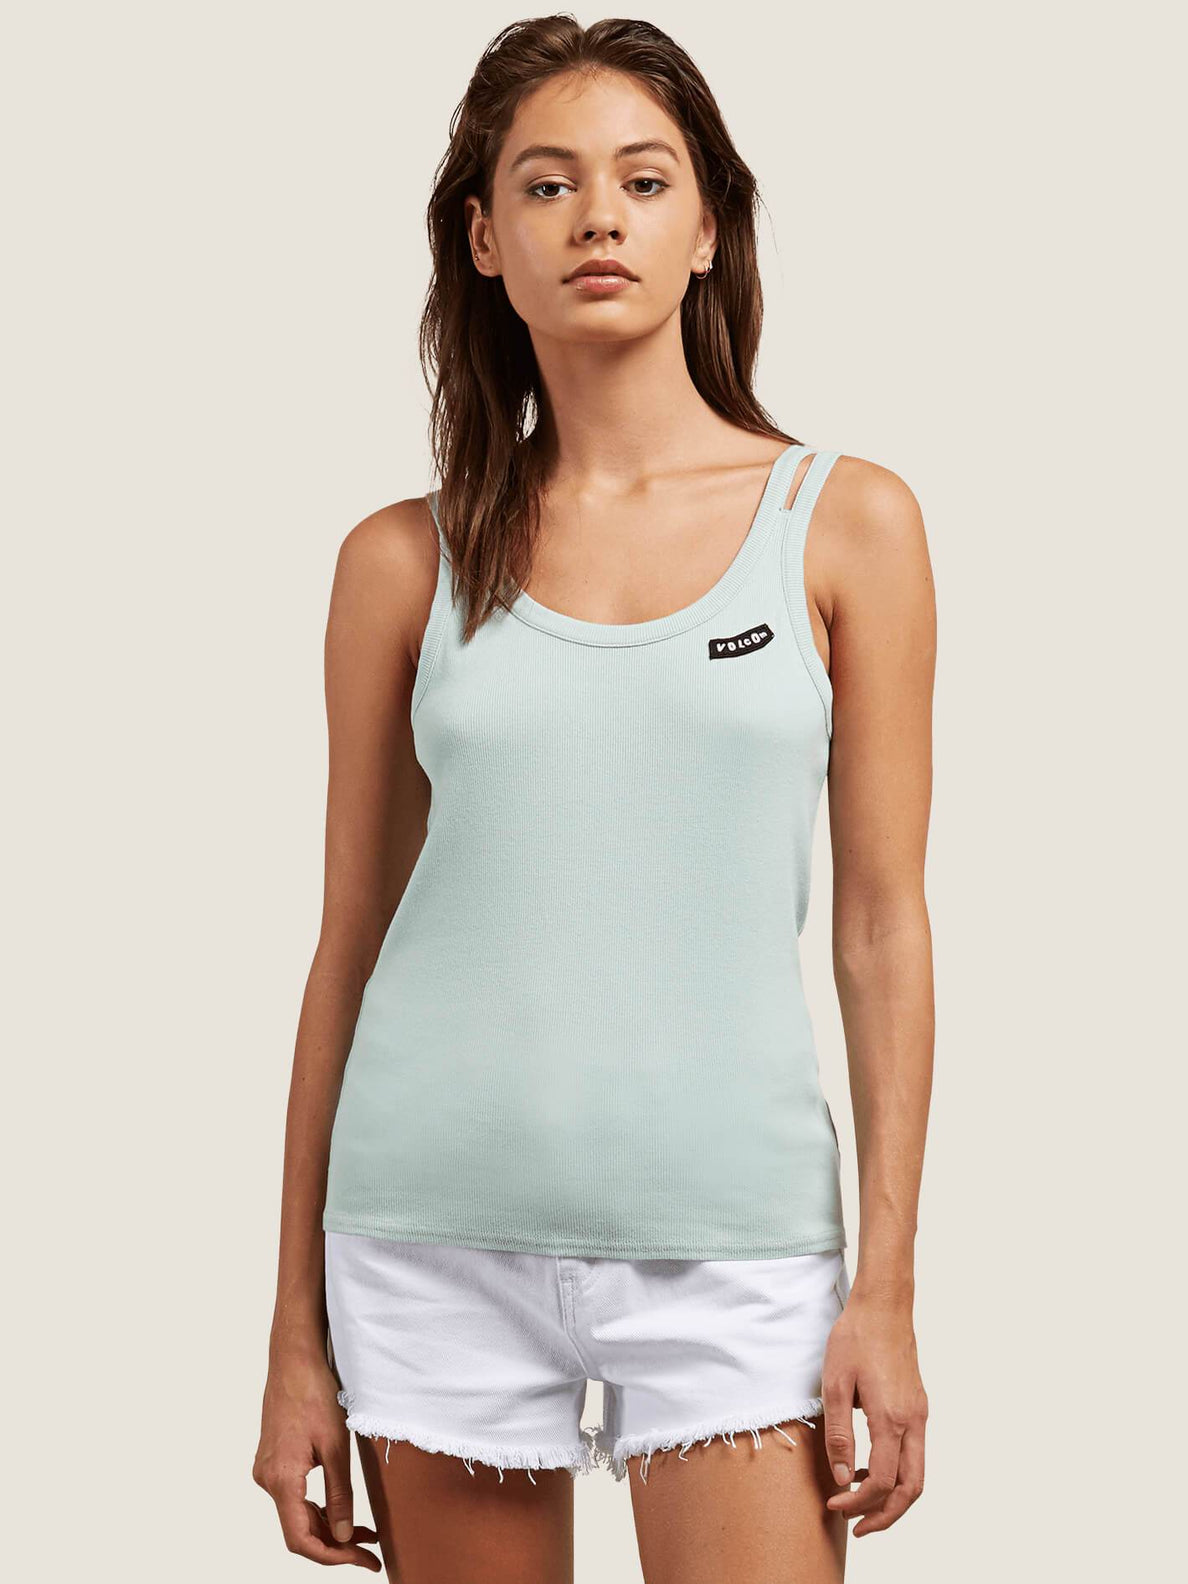 Cactus Ridge Tank In Mint, Front View